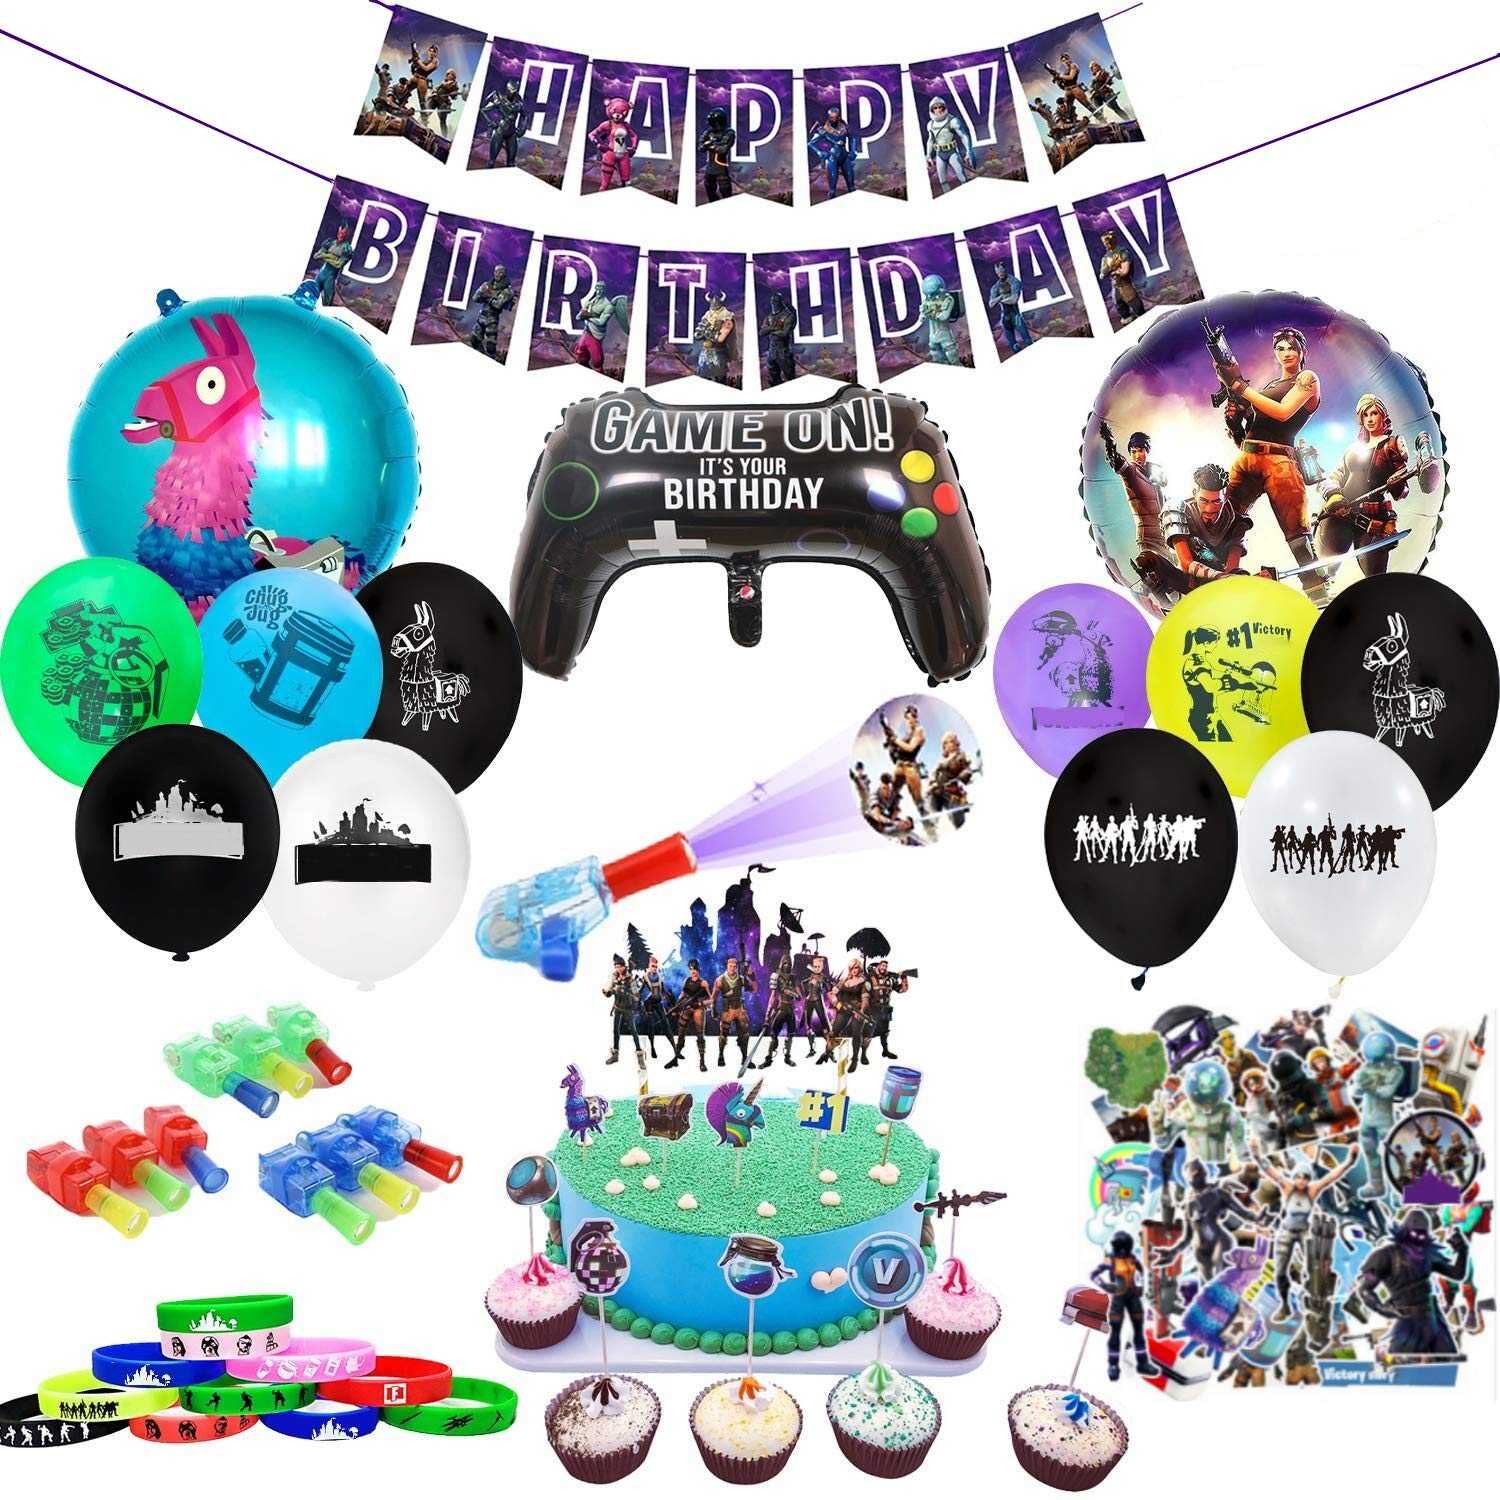 Birthday Party Supplies for Game Fans, 110pcs Gaming Theme Party Decorations - include Balloons, Banner,Bracelets,Finger Lights,Stickers,Cake Toppers, Cupcake Toppers